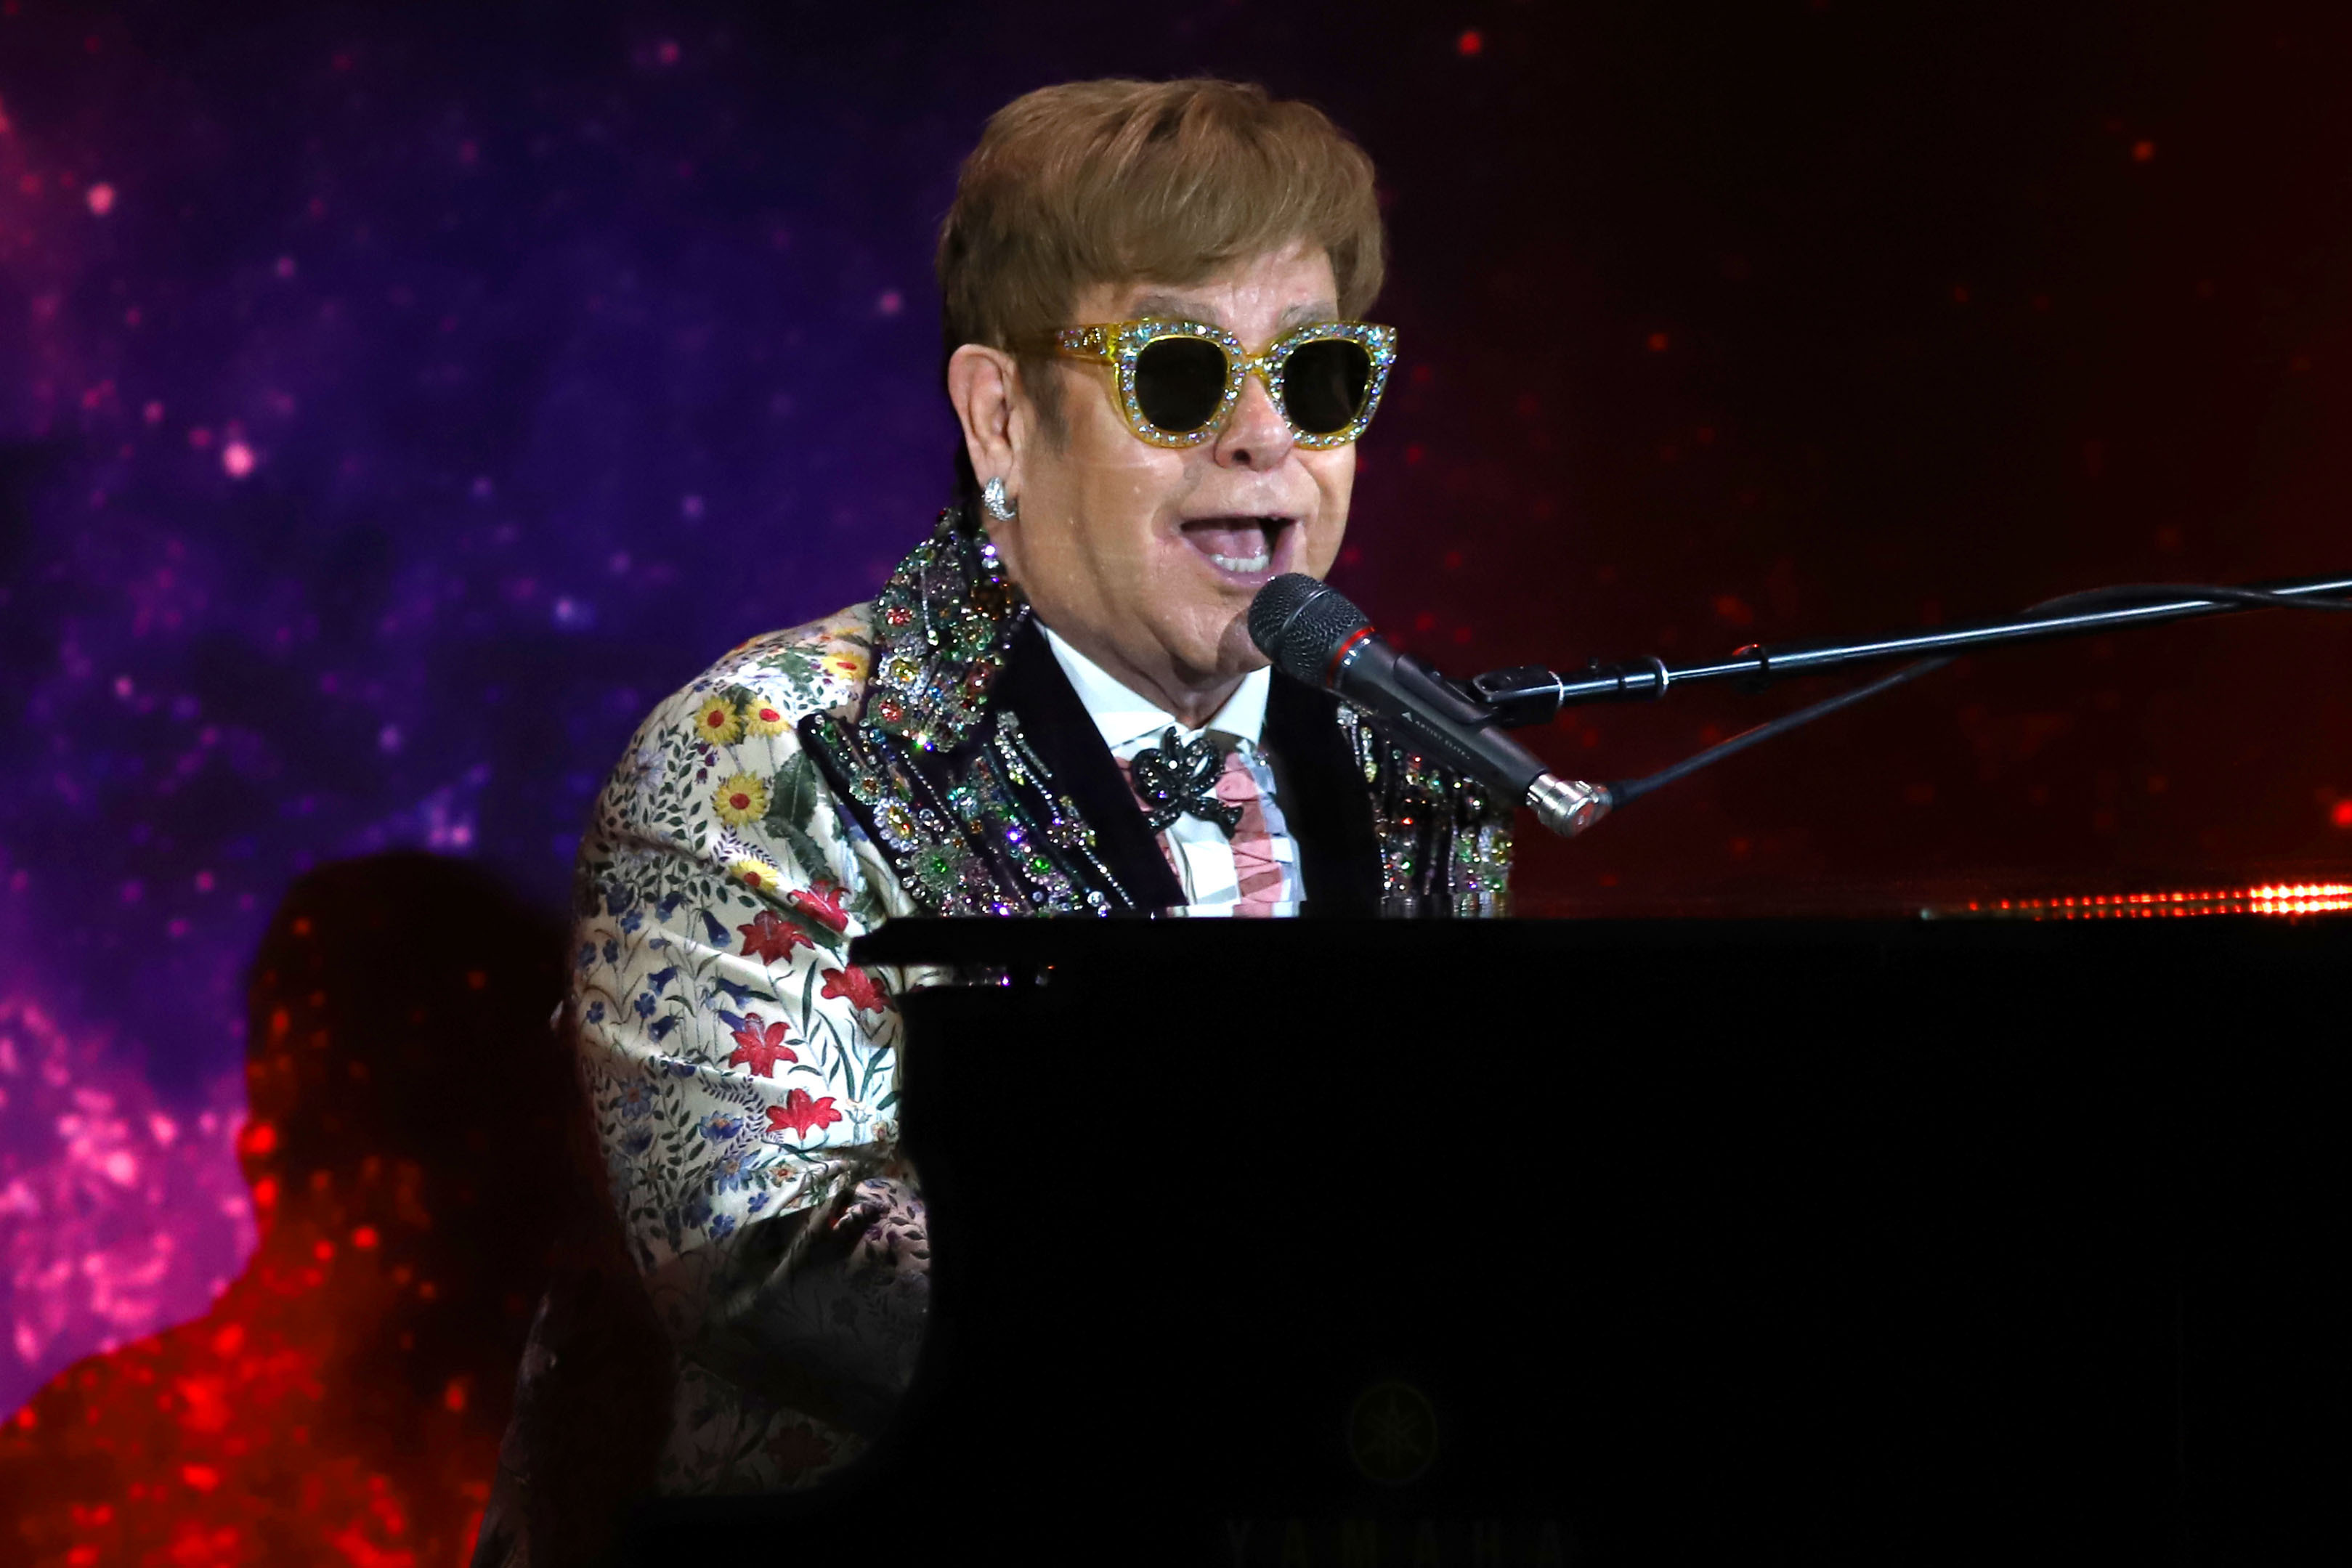 Elton John announces Dublin gig as part of 300 date farwell tour